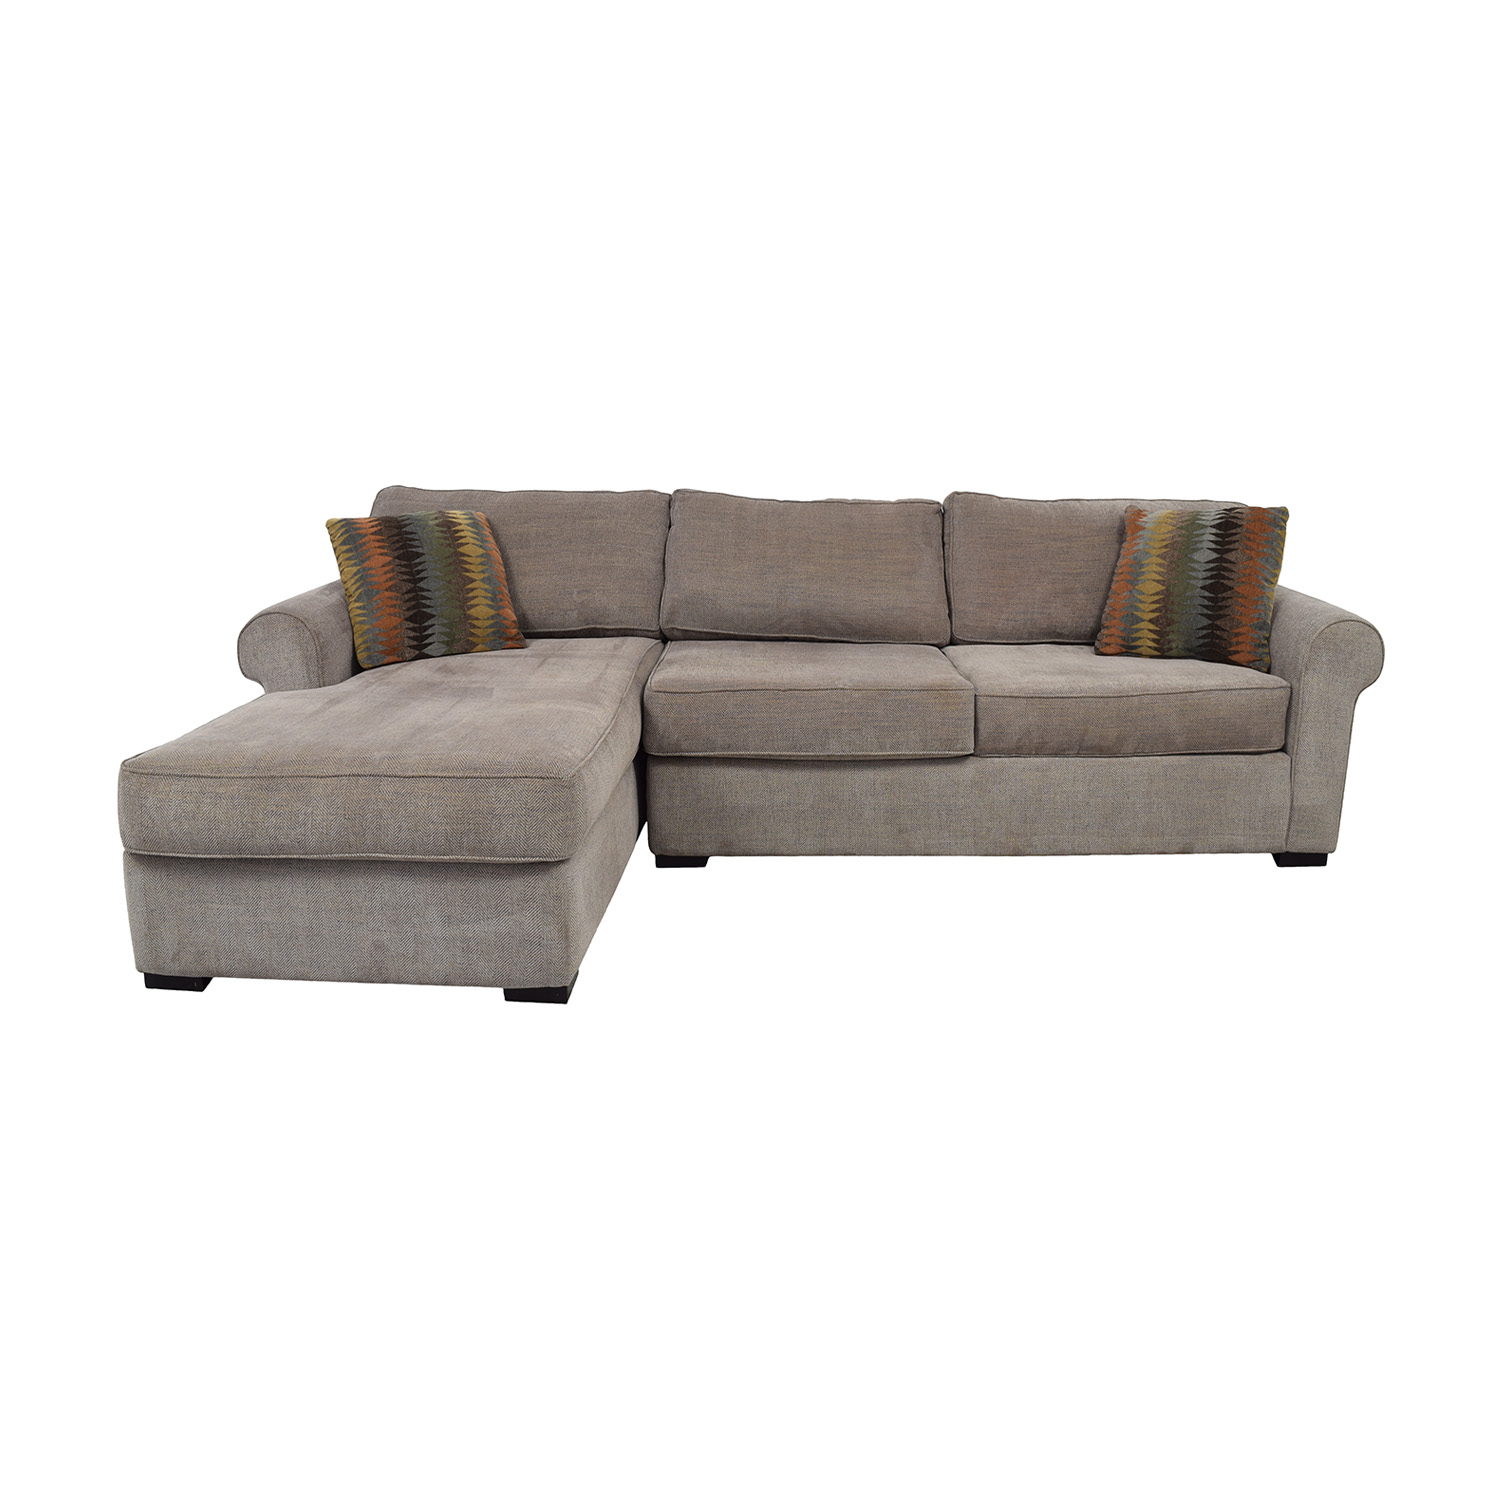 Raymour & Flanigan Raymour & Flanigan Brown Tweed Chaise Sectional dimensions